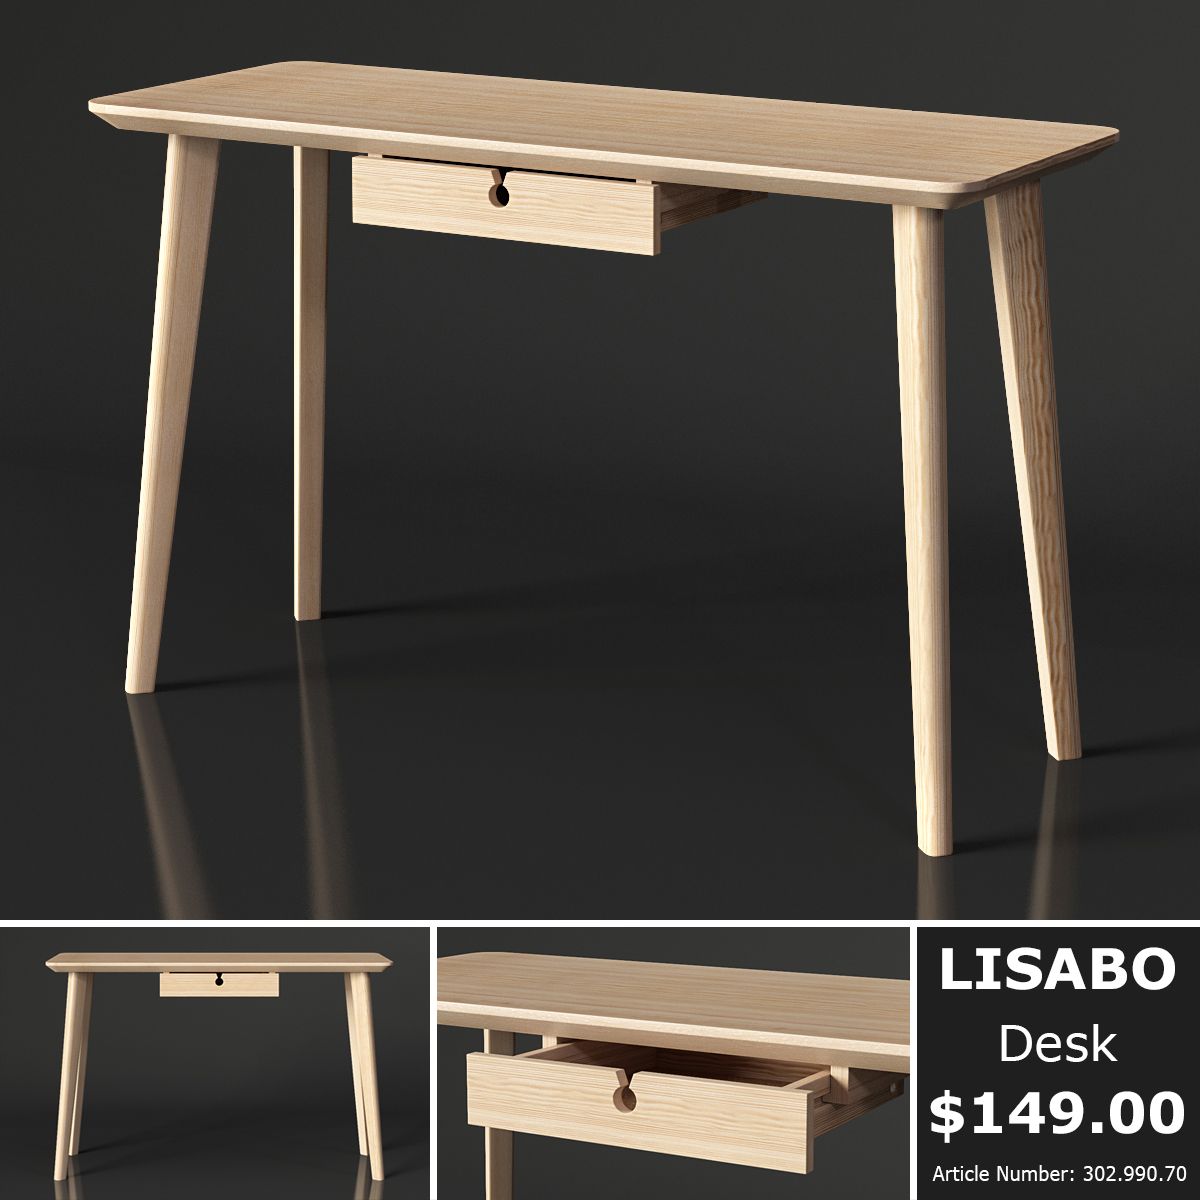 3d Ikea Lisabo Desk Model Turbosquid 1297496